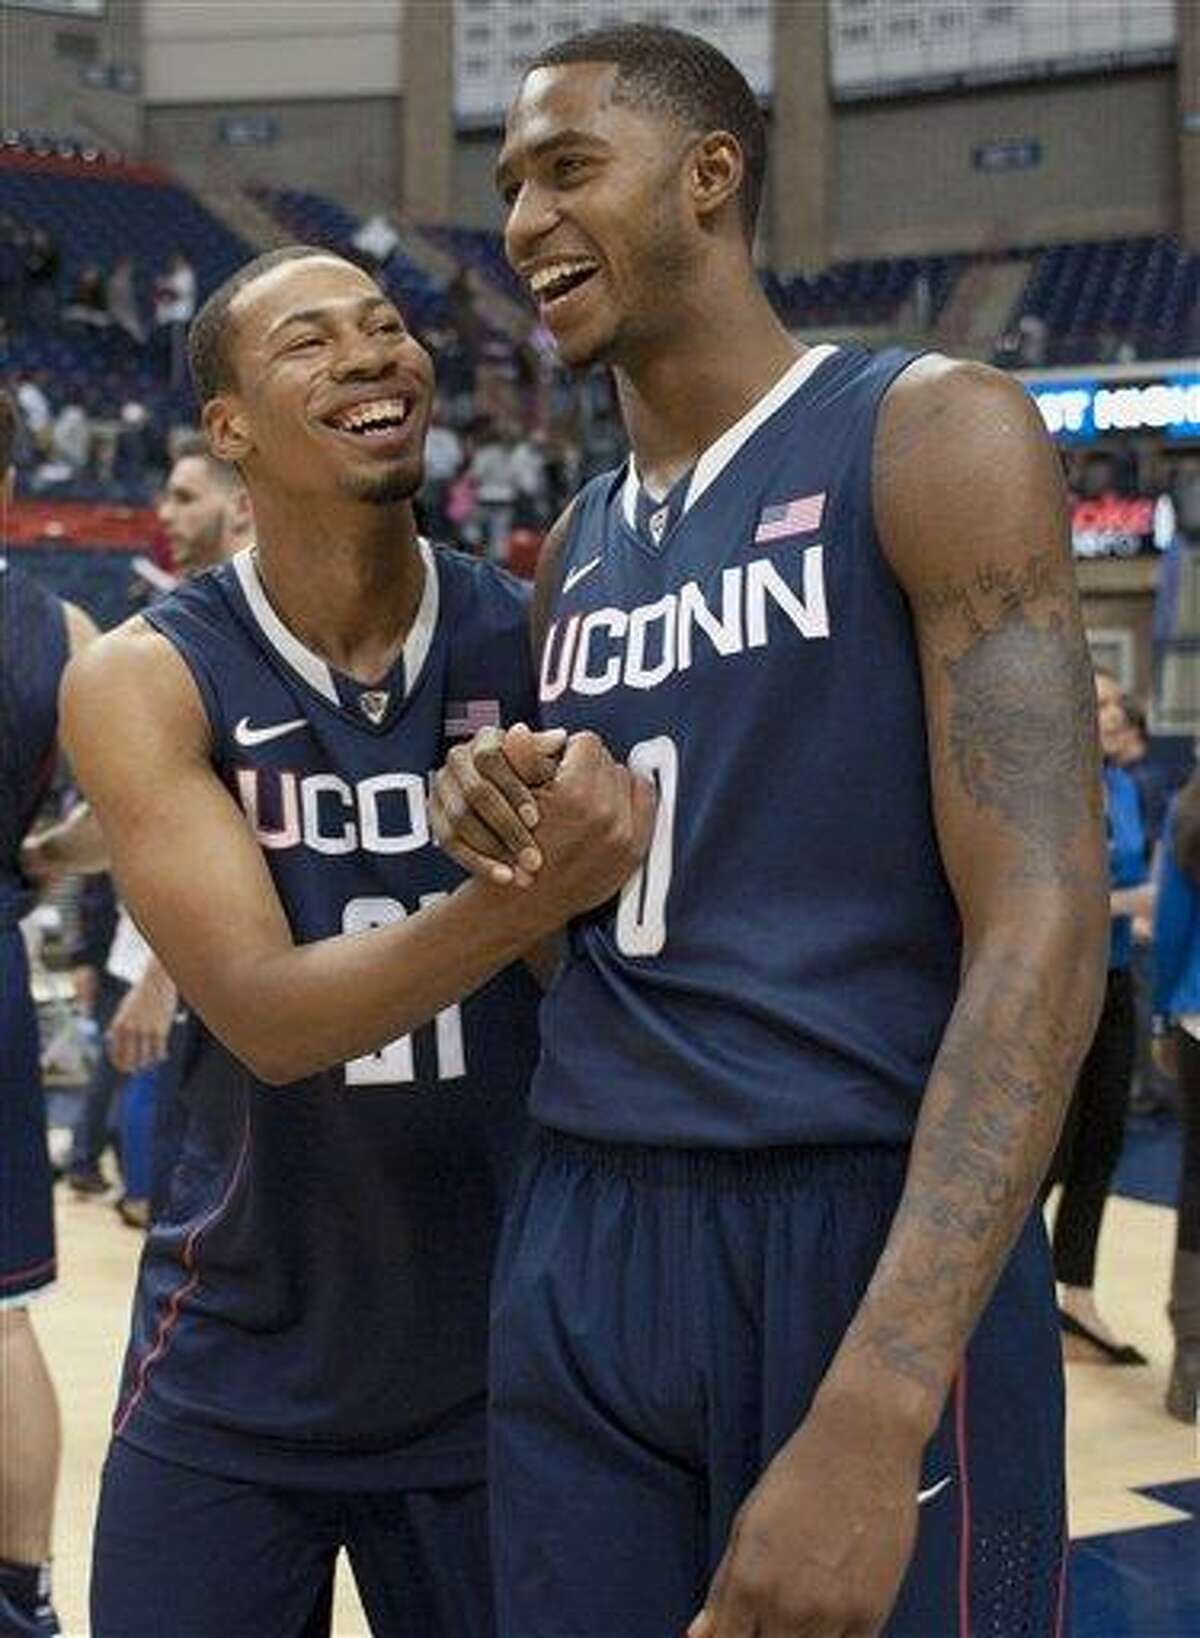 Connecticut's Omar Calhoun, left, celebrates with teammate Phillip Nolan, right after winning the slam dunk competition at the NCAA college basketball team's First Night event in Storrs, Conn., Friday, Oct. 12, 2012. (AP Photo/Jessica Hill)